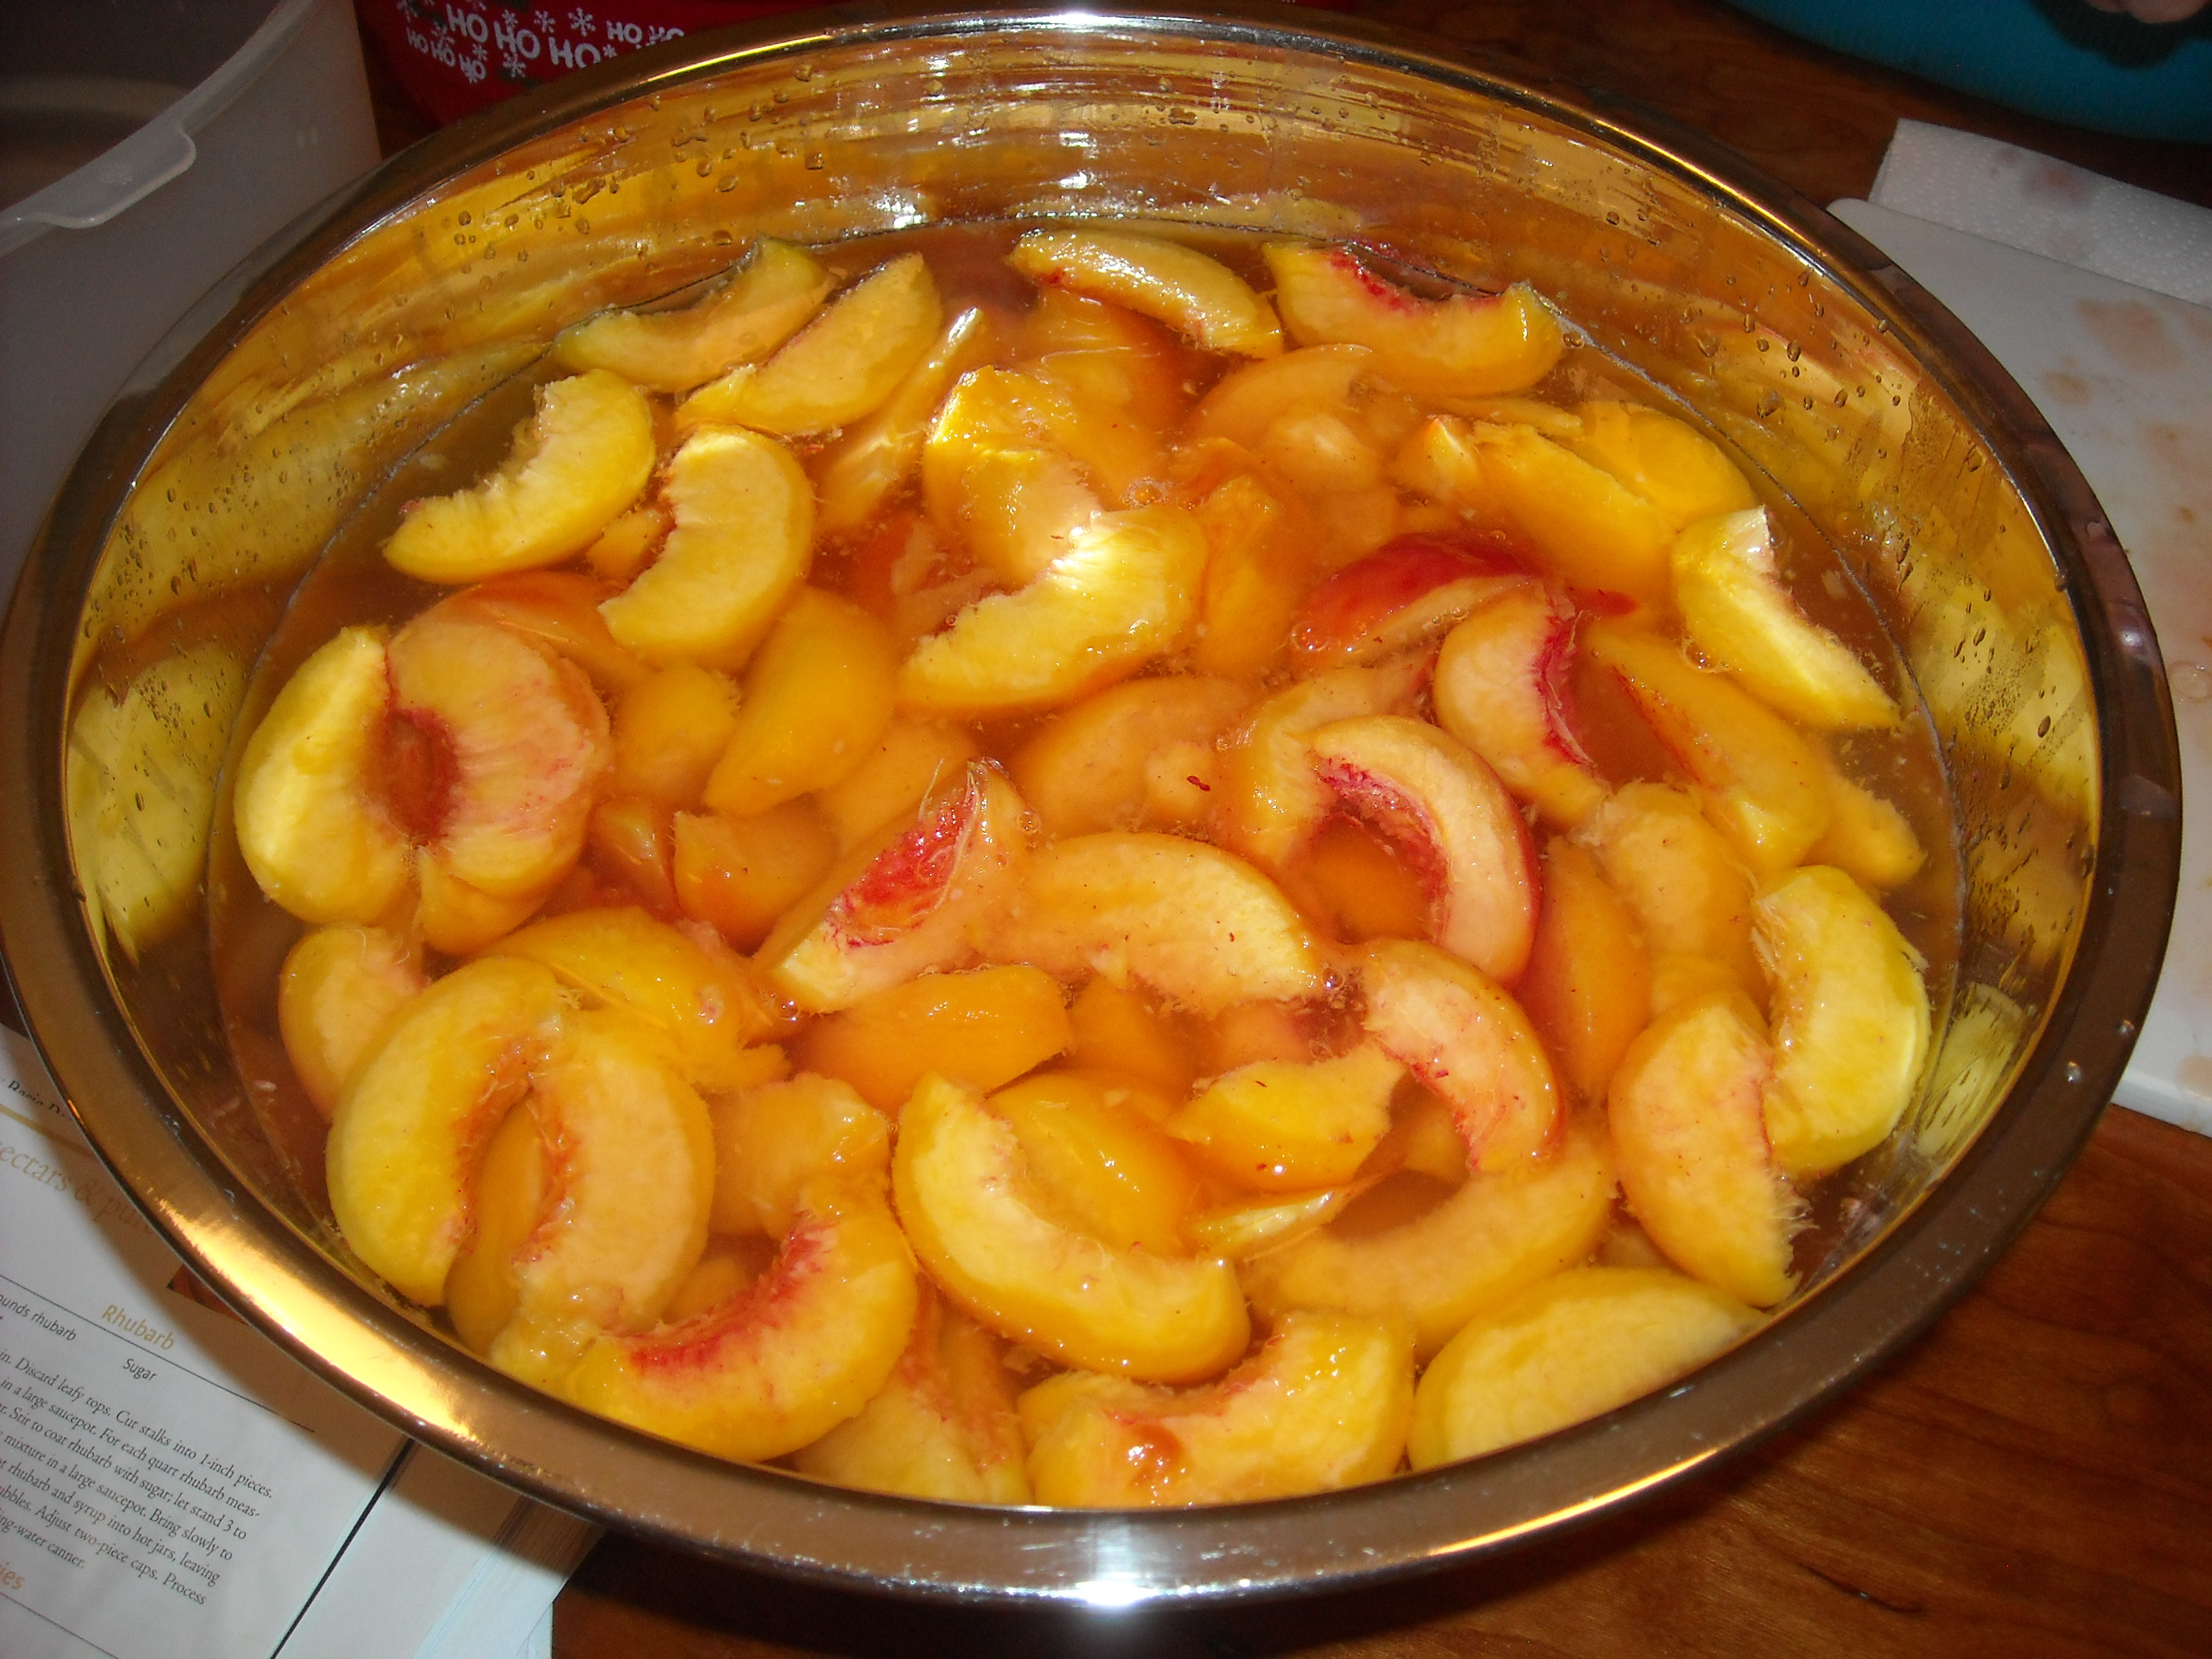 Bowl of peaches.